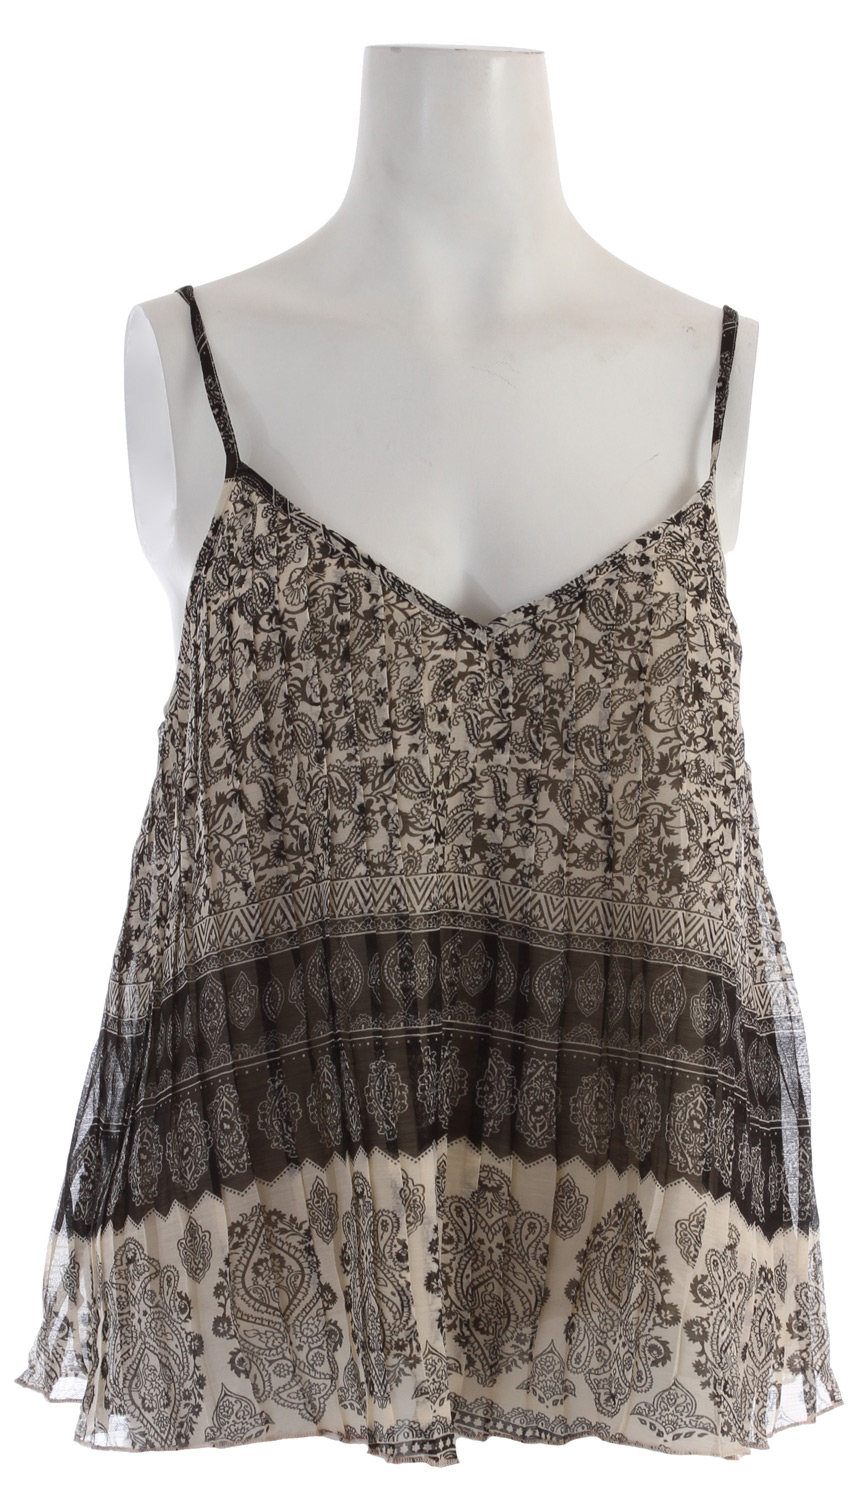 Surf Key Features of the Billabong Pleat It Cami: 68% polyester/32% cotton pleated woven chiffon cami w/ all-over print & adjustable straps - $28.95